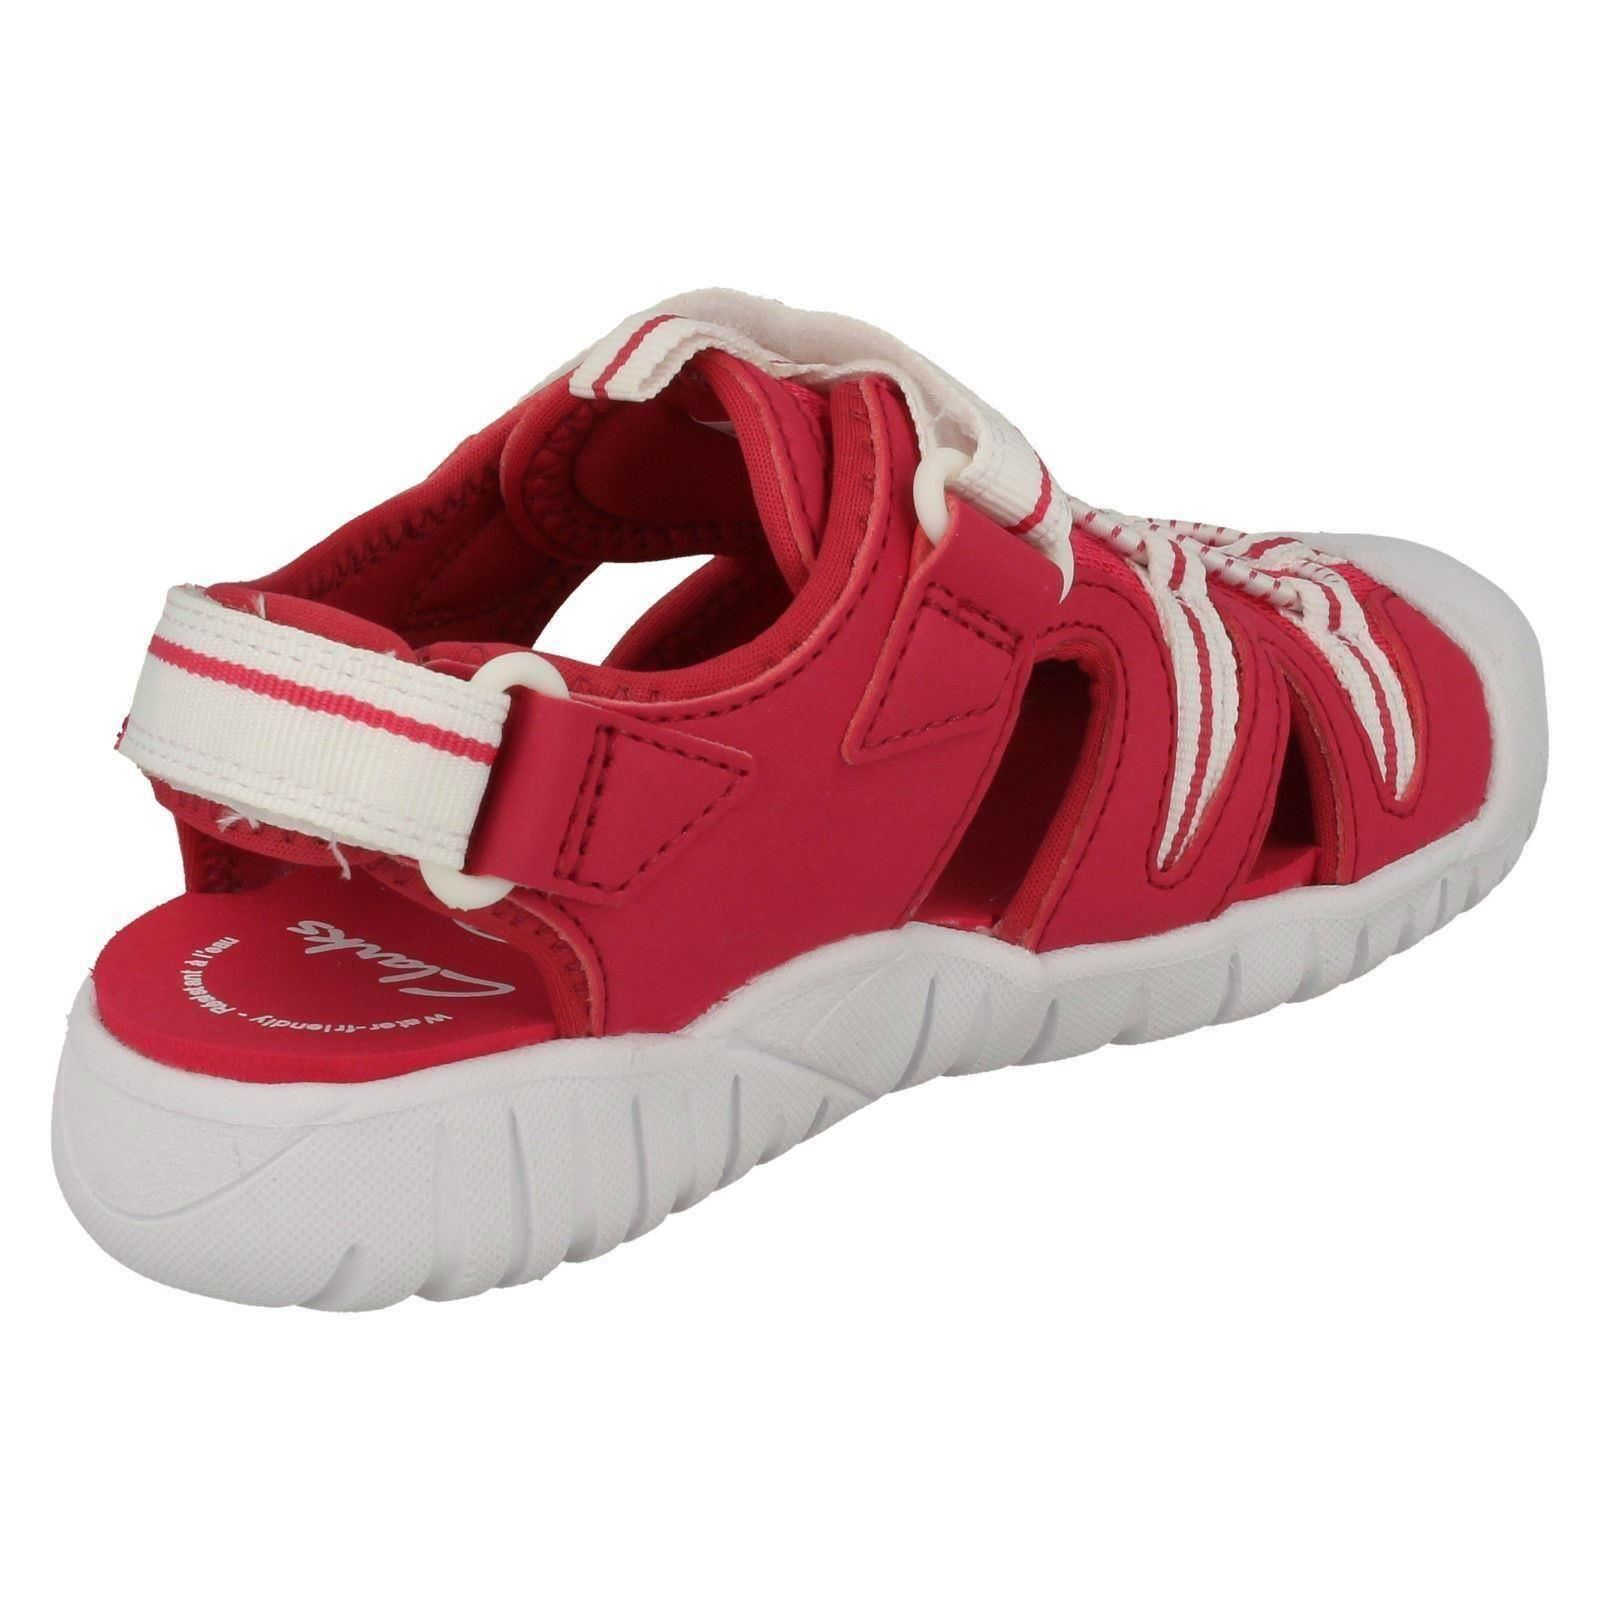 Clarks Girls Casual Trainer Sandals /'Rapid Beach/'